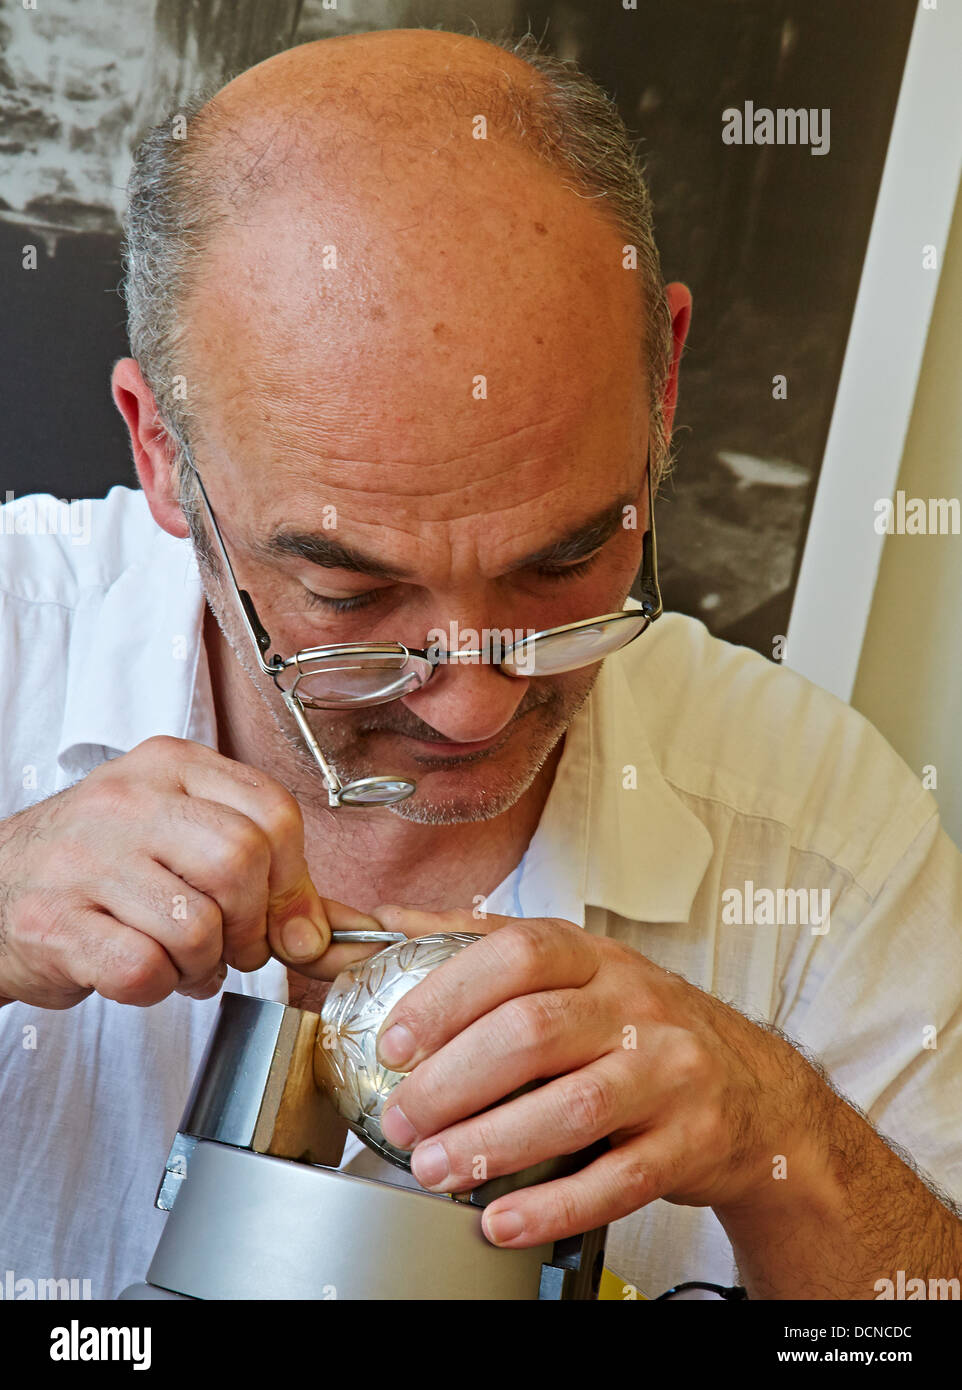 Silversmith inscribing a silver bowl with decorative marks - Stock Image